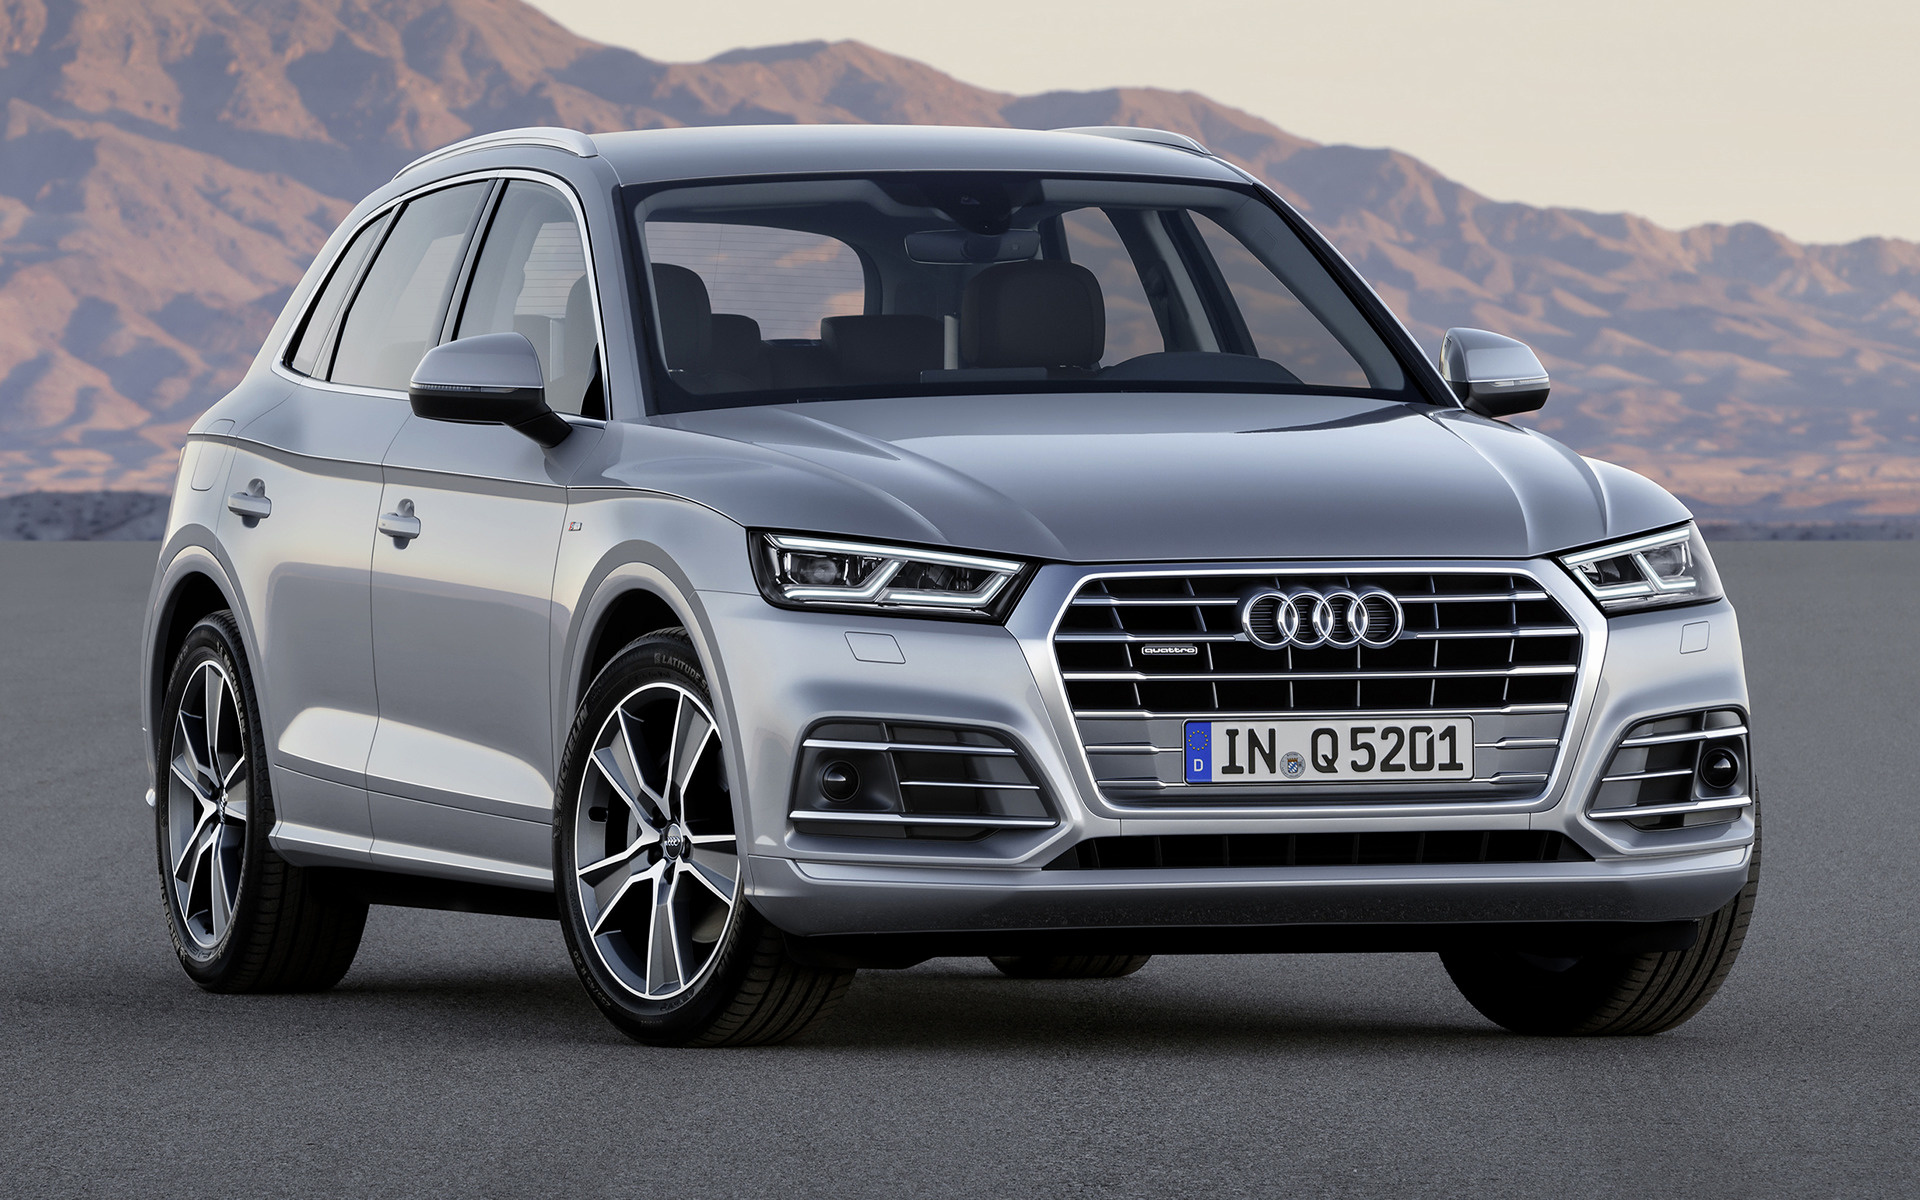 2016 Audi Q5 >> Audi Q5 S line (2017) Wallpapers and HD Images - Car Pixel